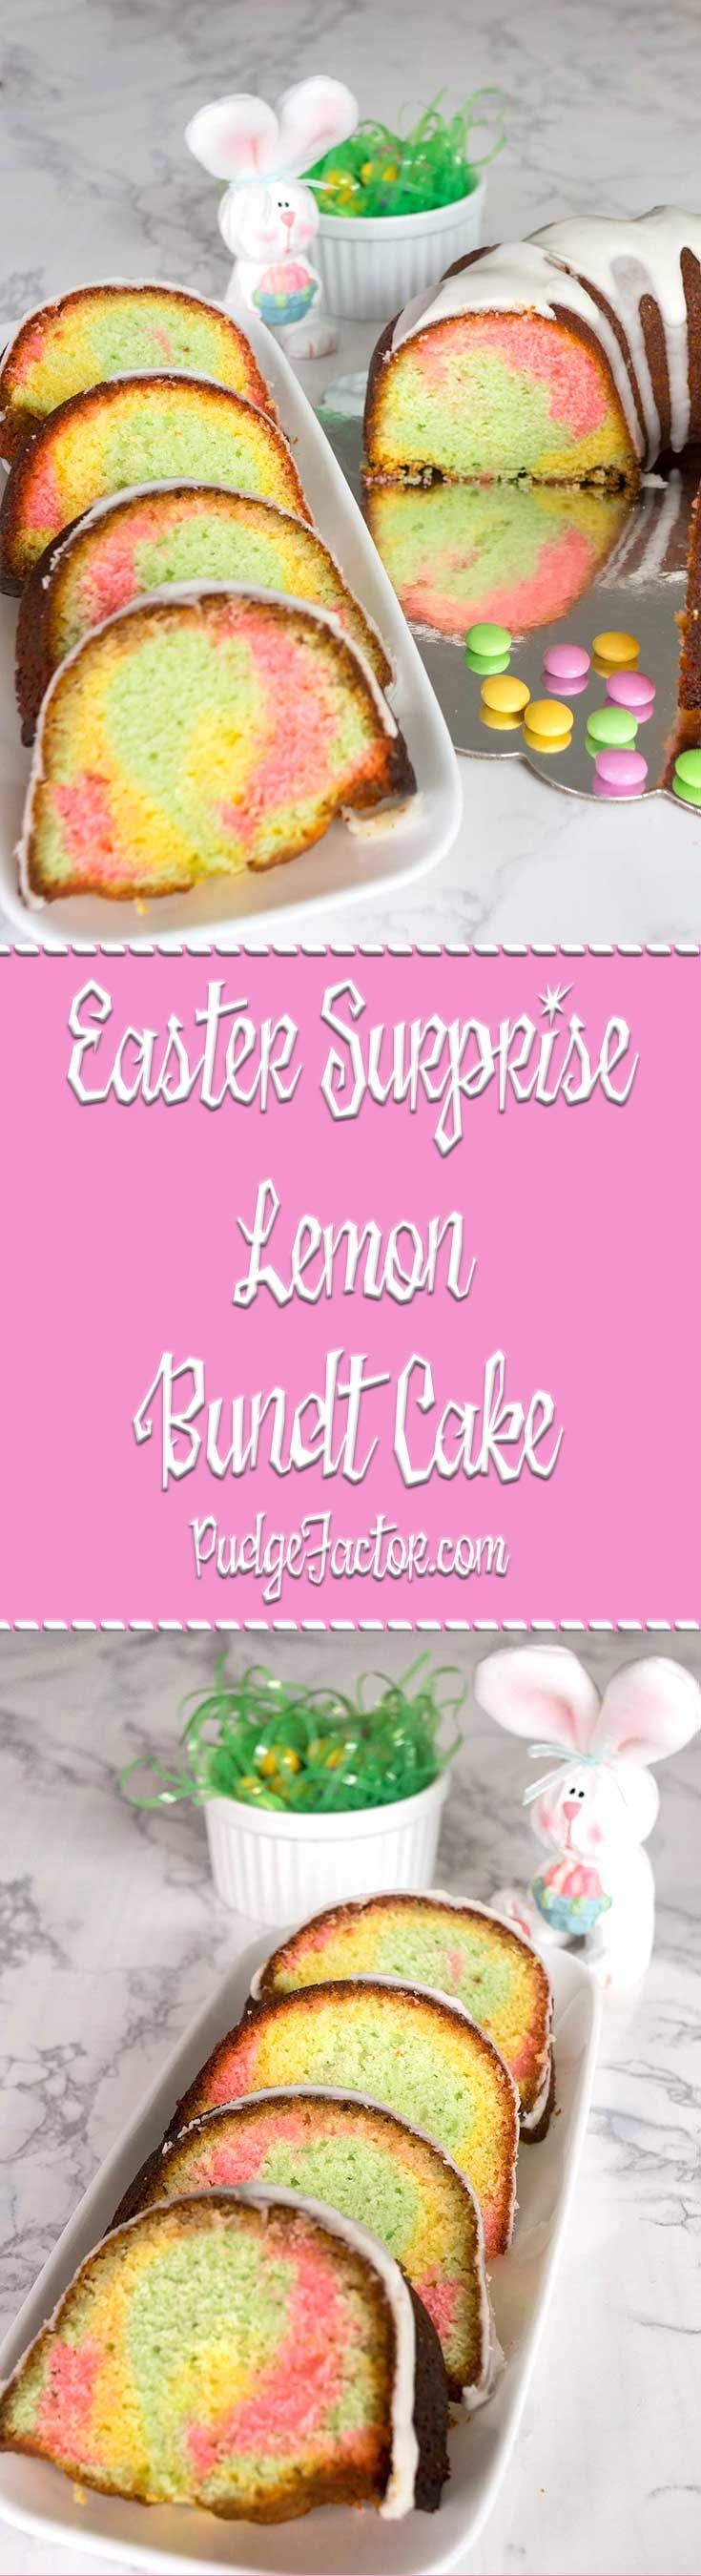 Brighten your Easter season with this rich and moist Easter Surprise Lemon Bundt Cake. It feels like springtime, and tastes amazing. via @c2king